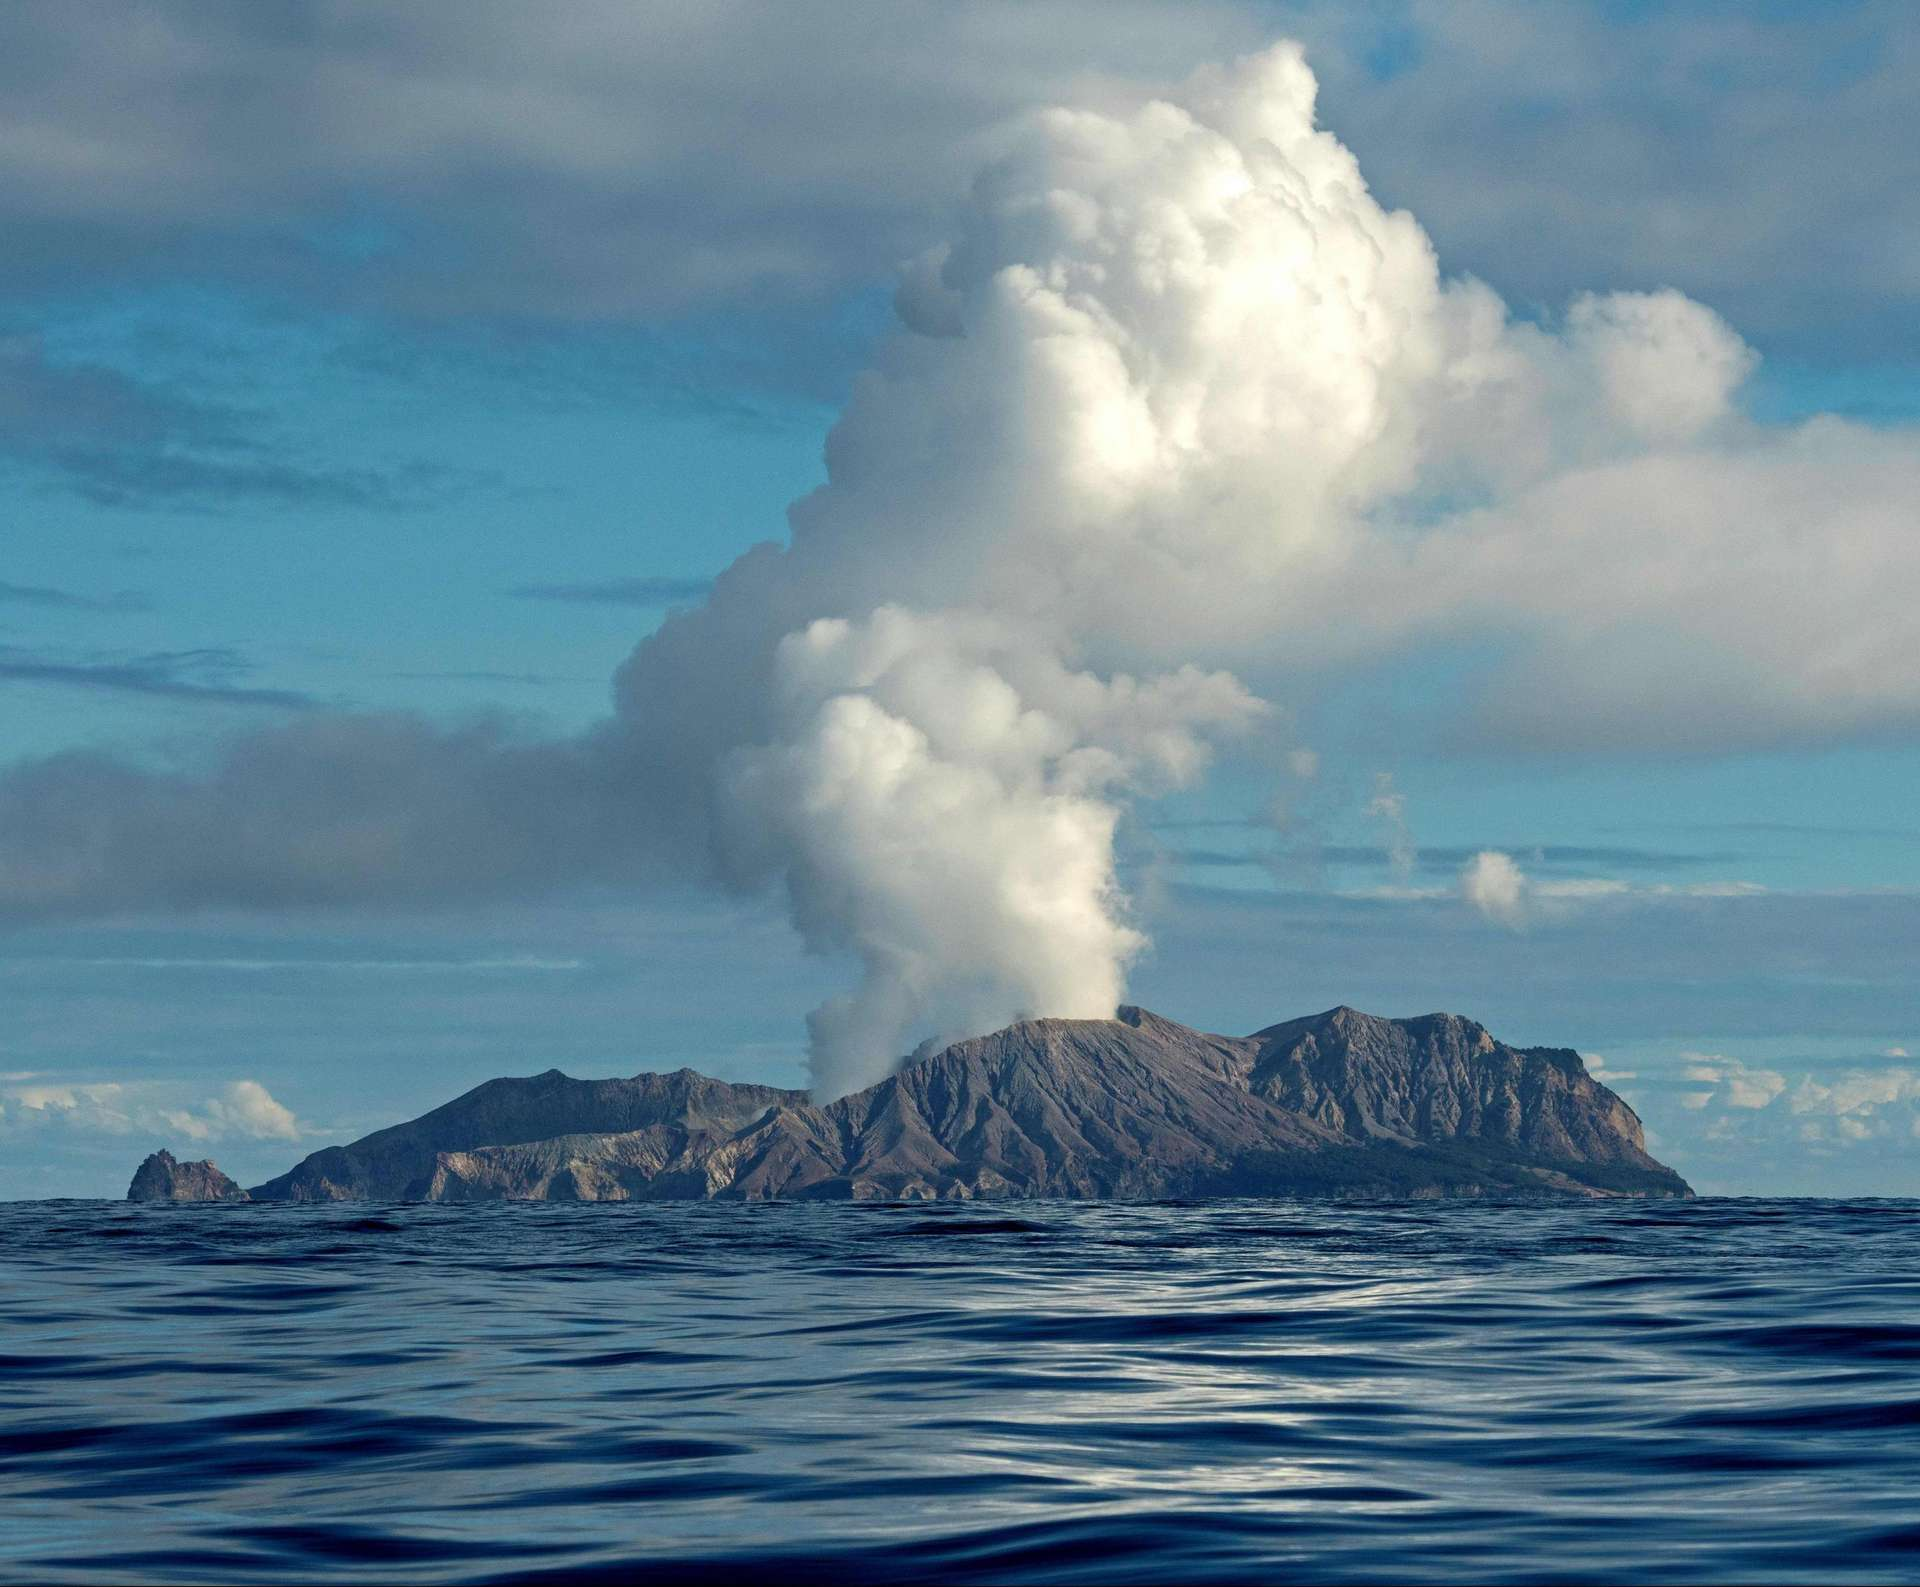 Le volcan de White Island est réputé actif. © AFP, Courtesy of Chris Firkin